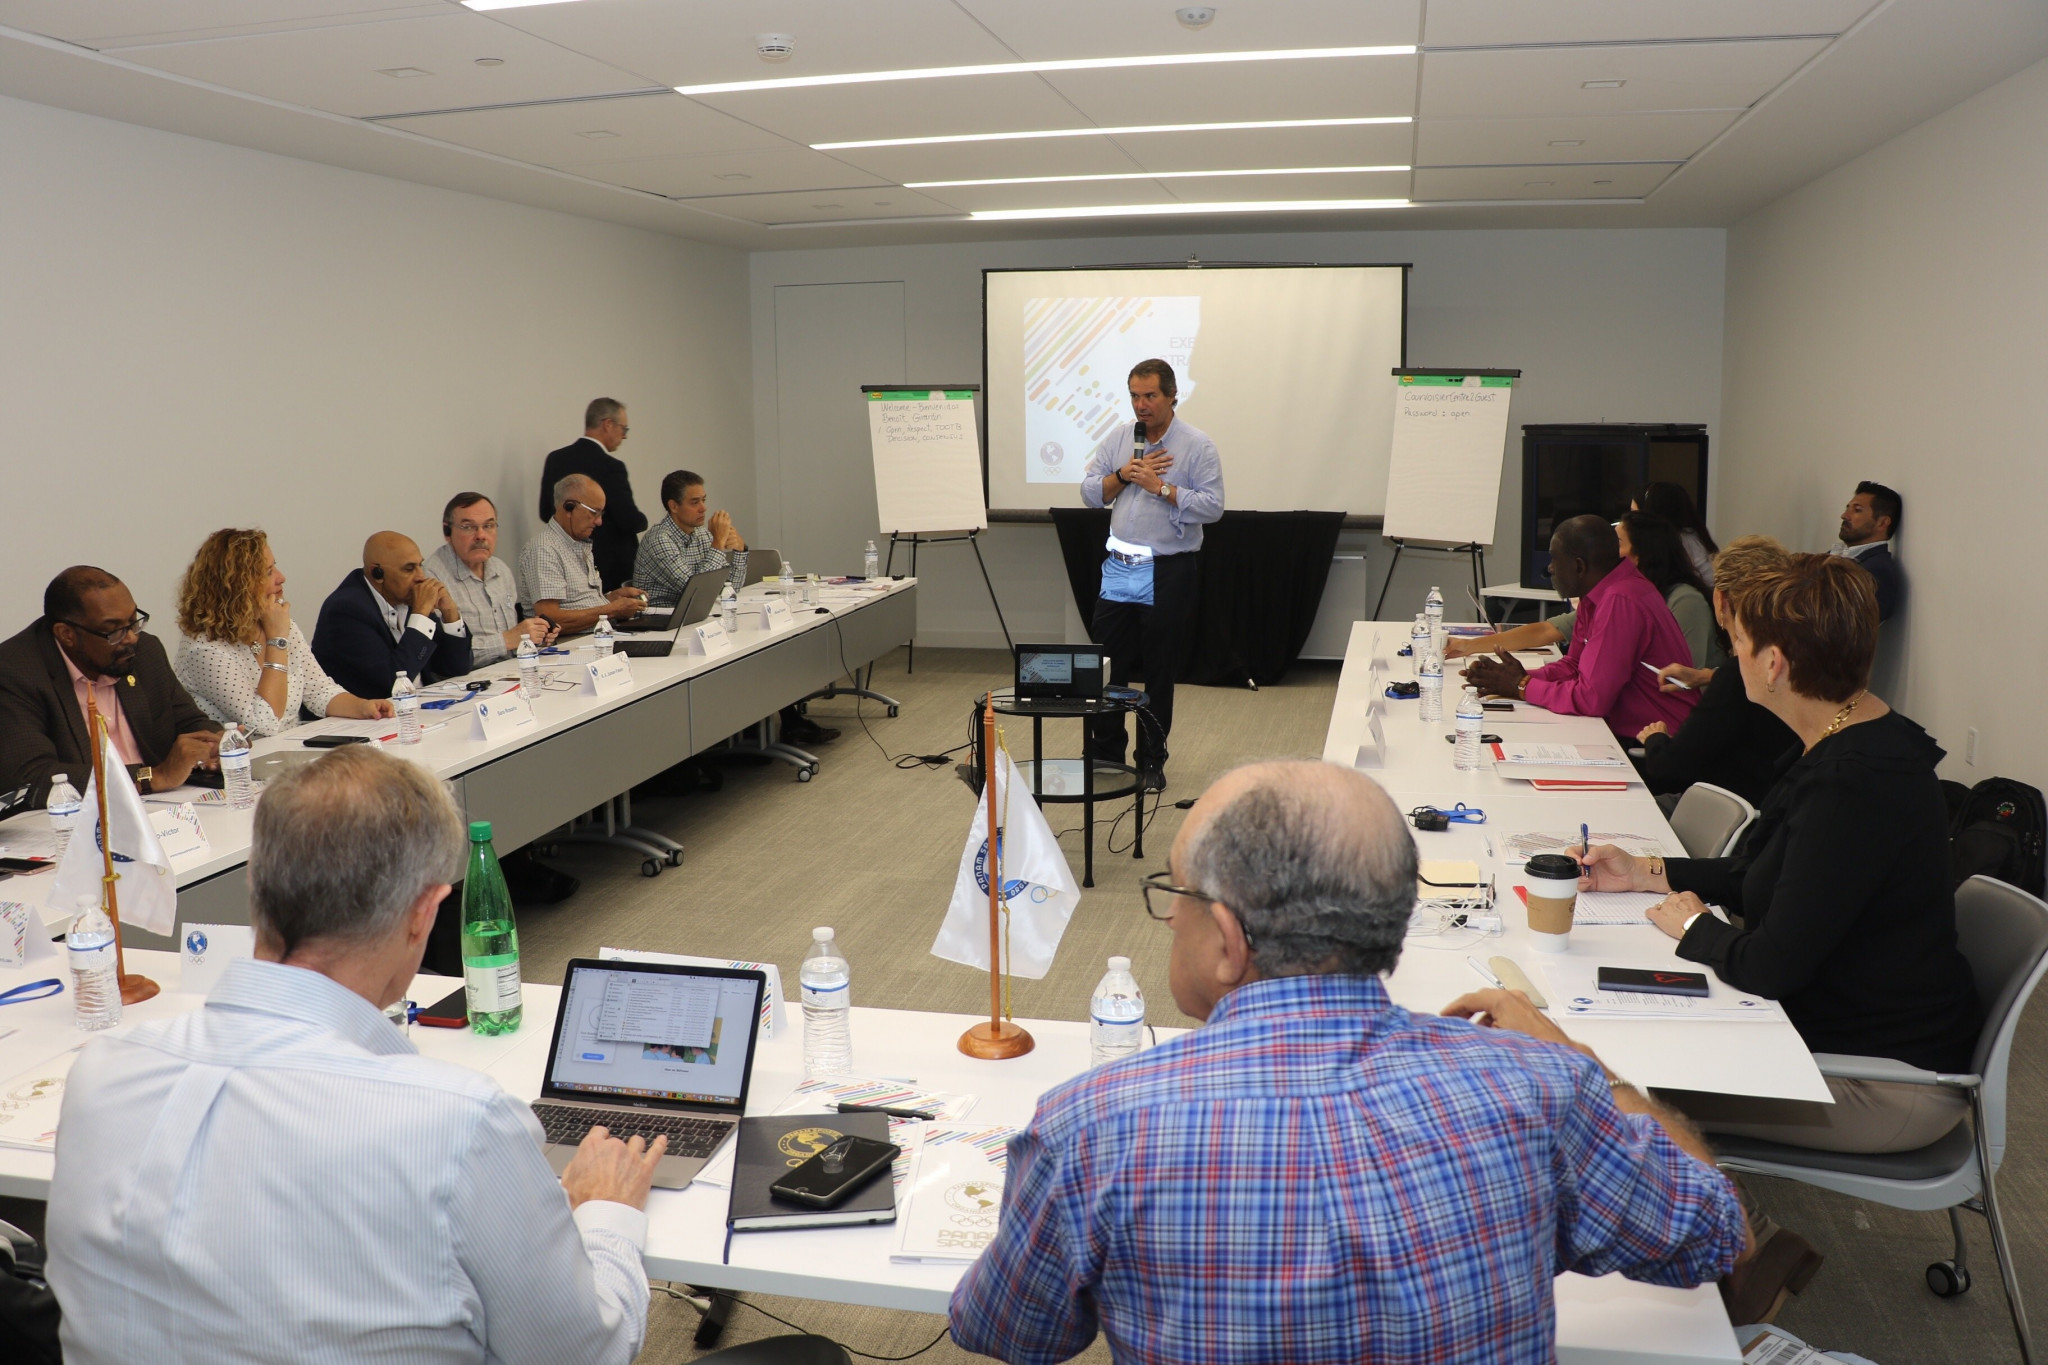 Panam Sports leaders meet in Miami to discuss future priorities and plans